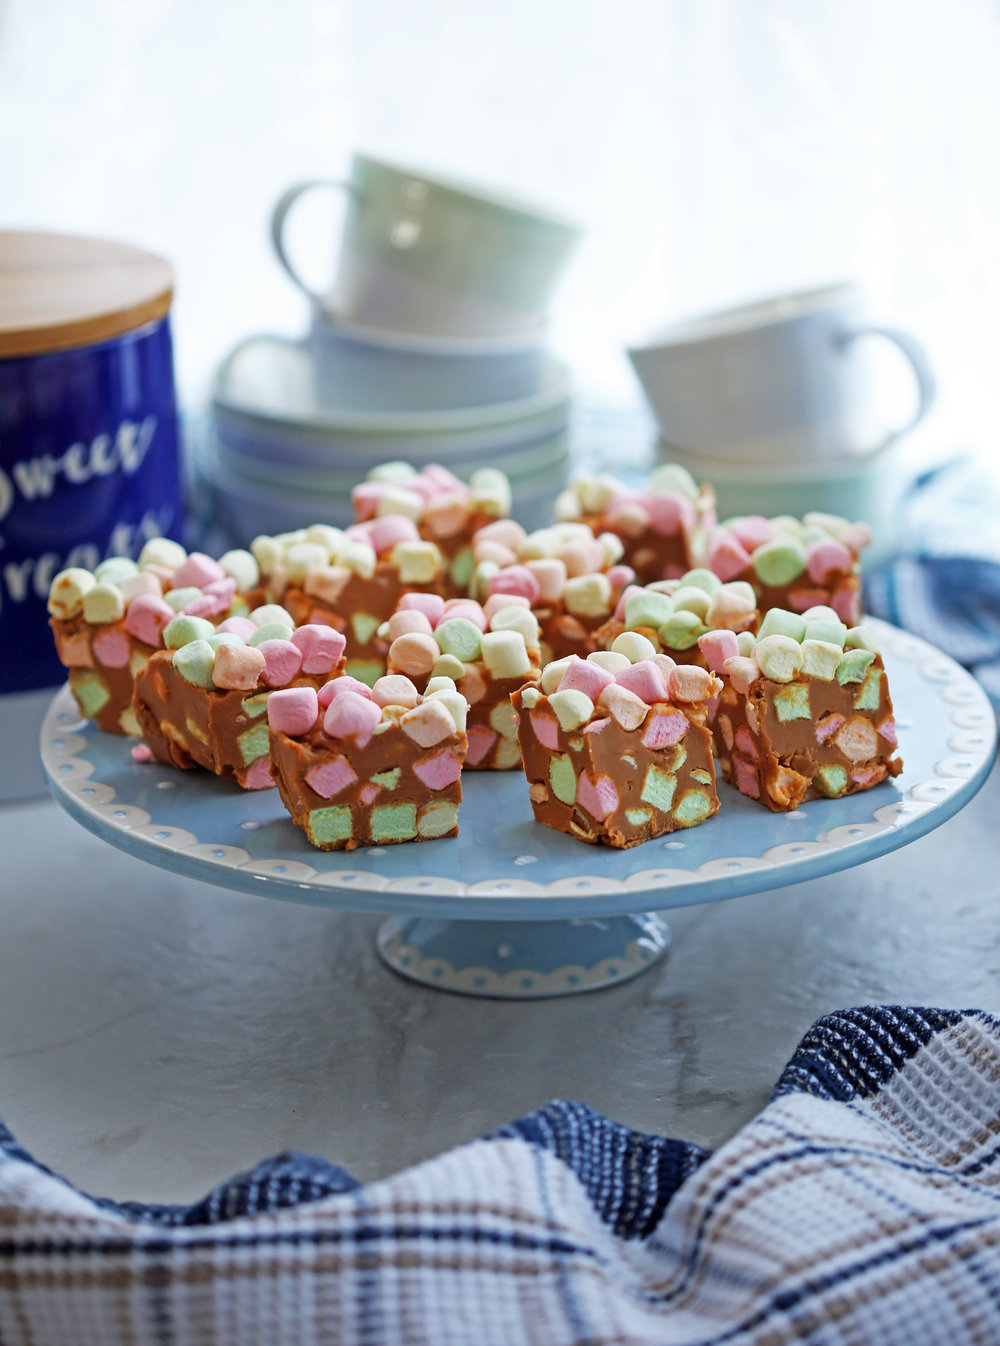 Peanut butter butterscotch marshmallows bars also known as confetti bars on a blue cake stand.